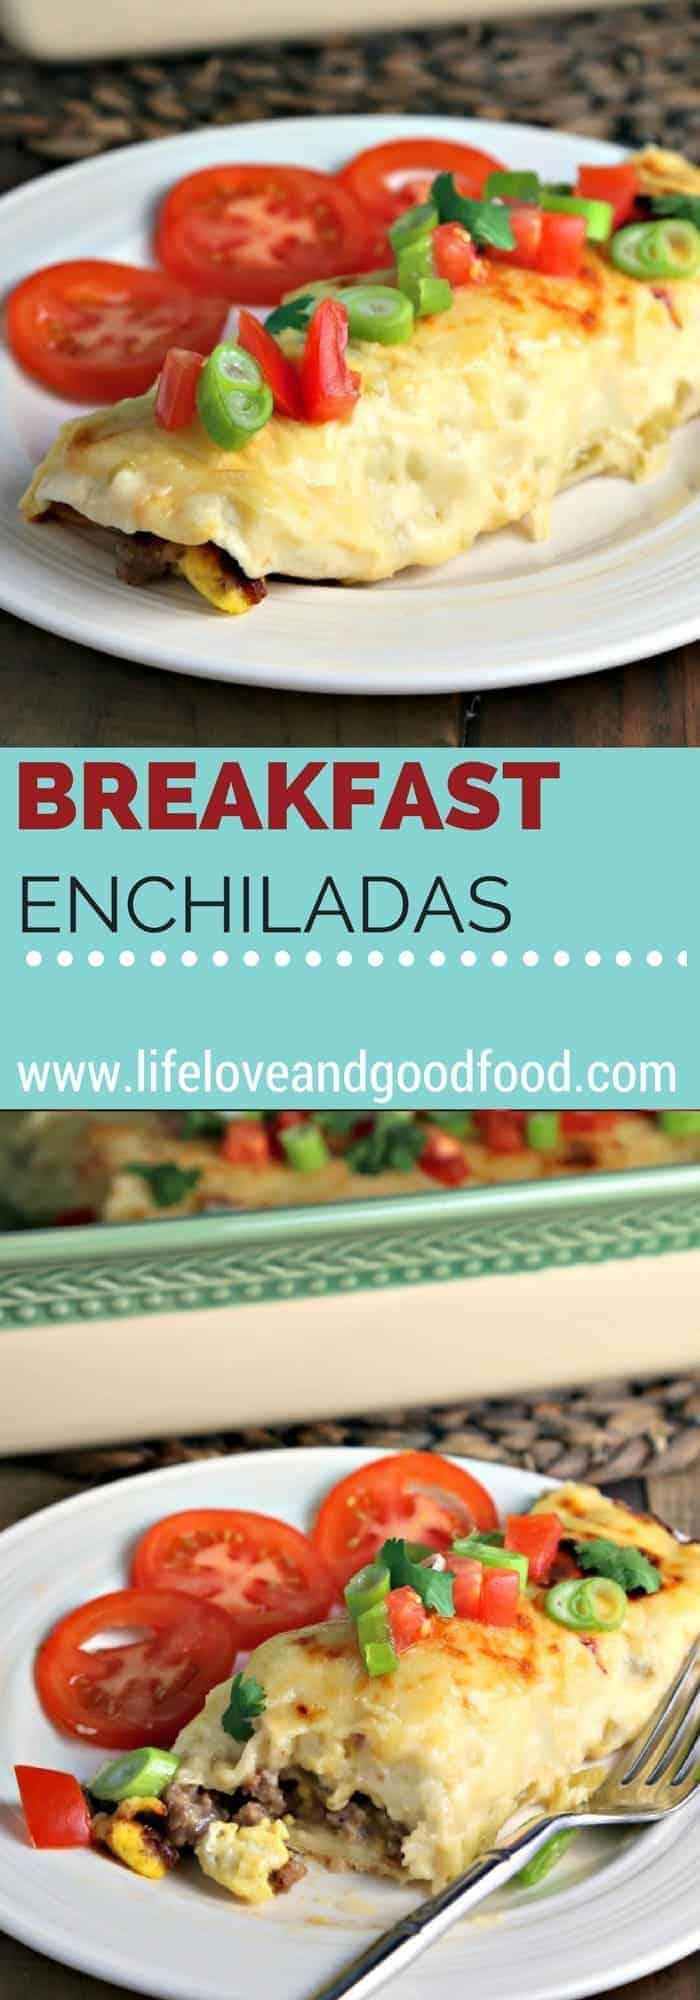 Breakfast Enchiladas—filled with savory sausage, eggs, and cheese—are smothered with a versatile green chili cheese sauce. #3ggs